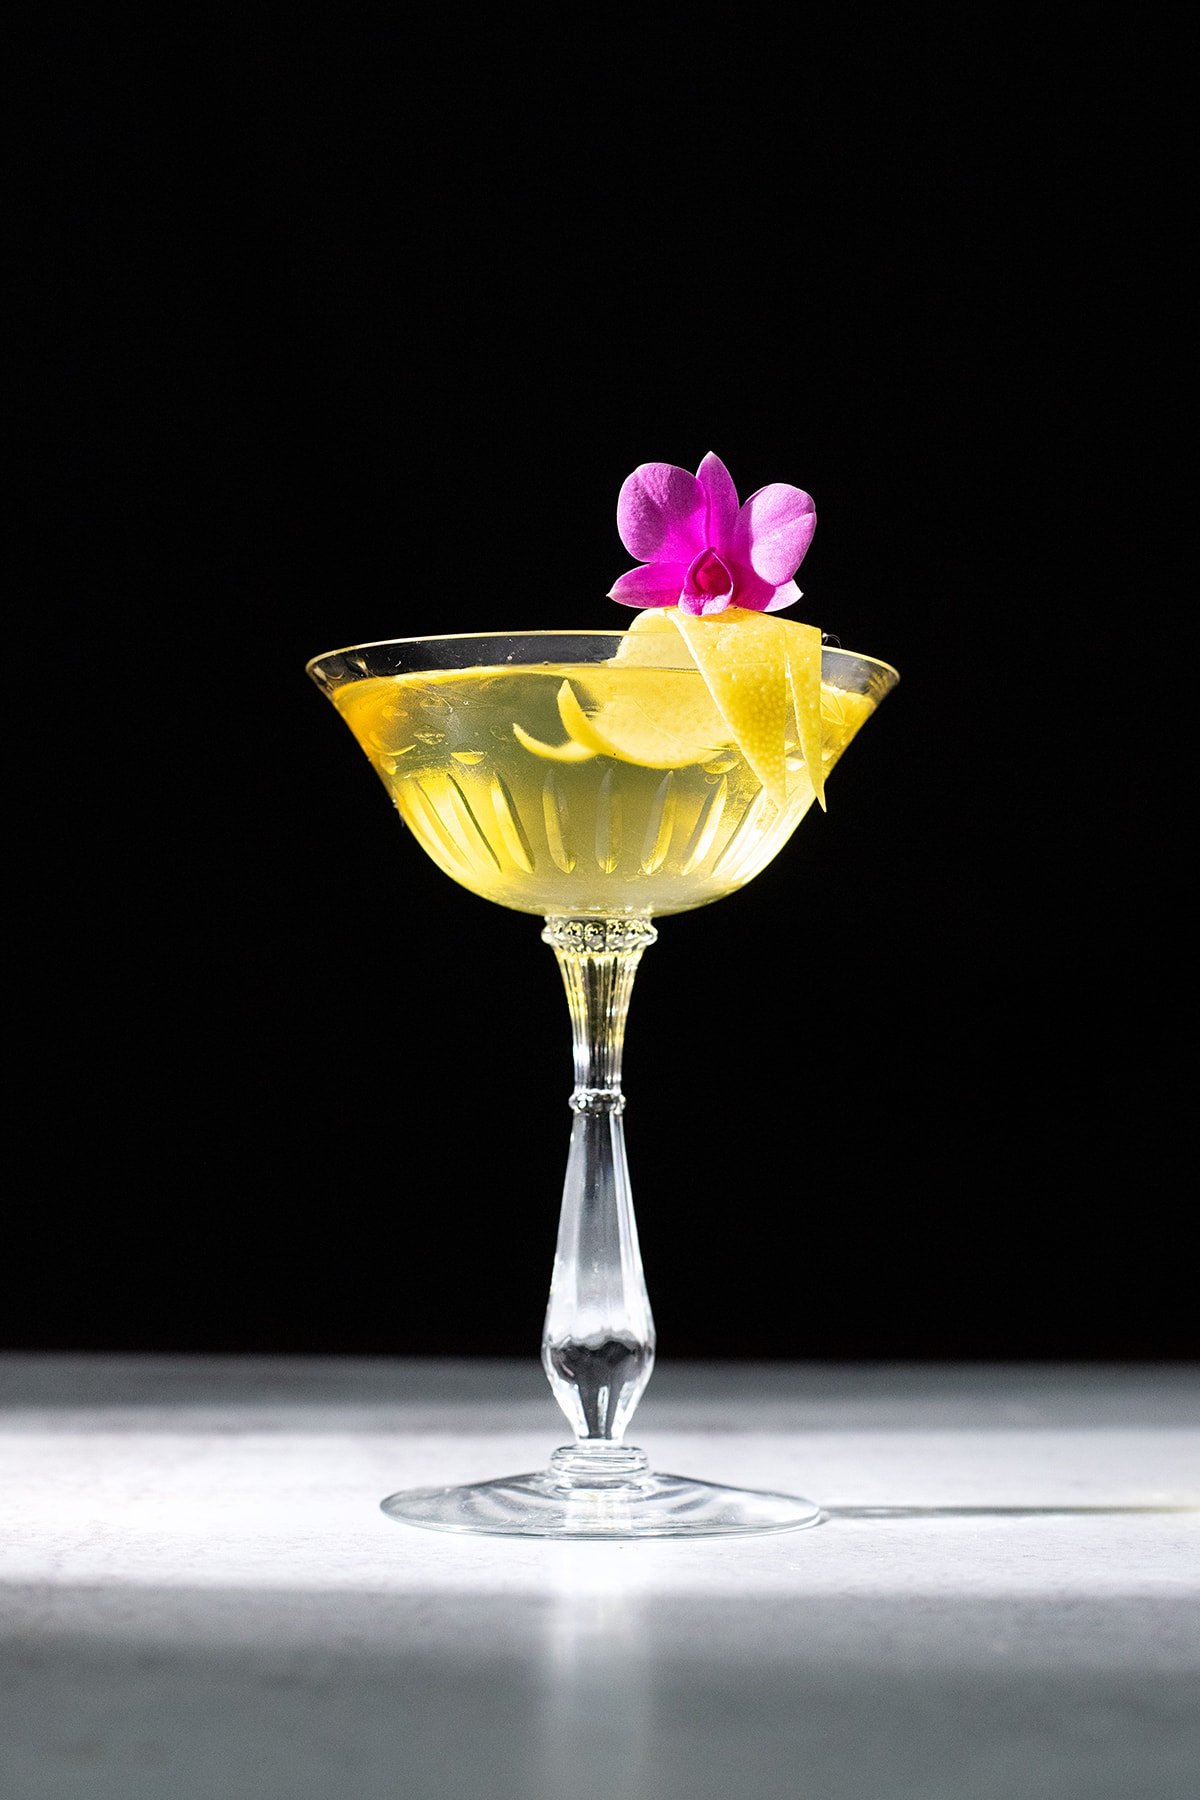 bright yellow cocktail in a coupe glass.